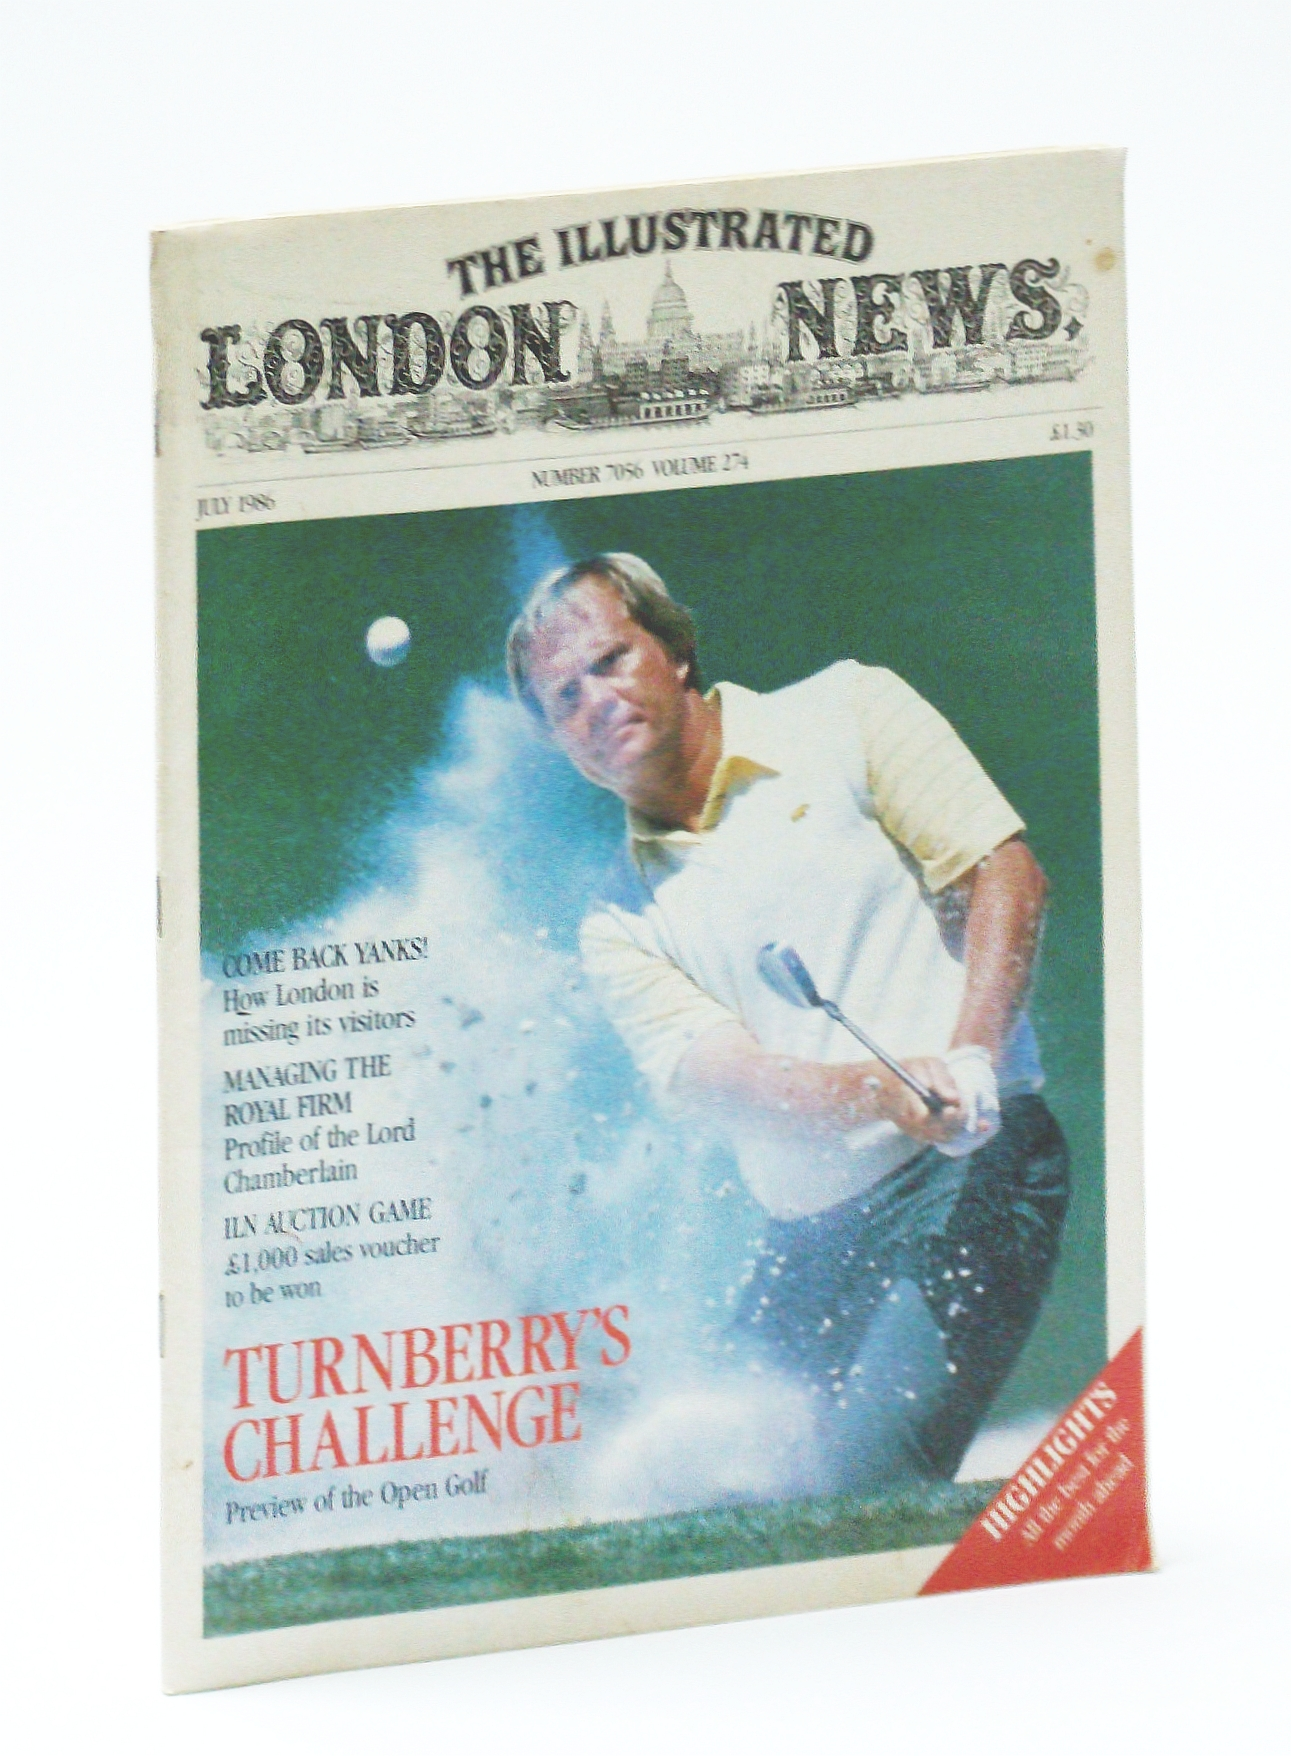 Image for The Illustrated London News [Magazine], July 1986 - Jack Nicklaus Cover Photo